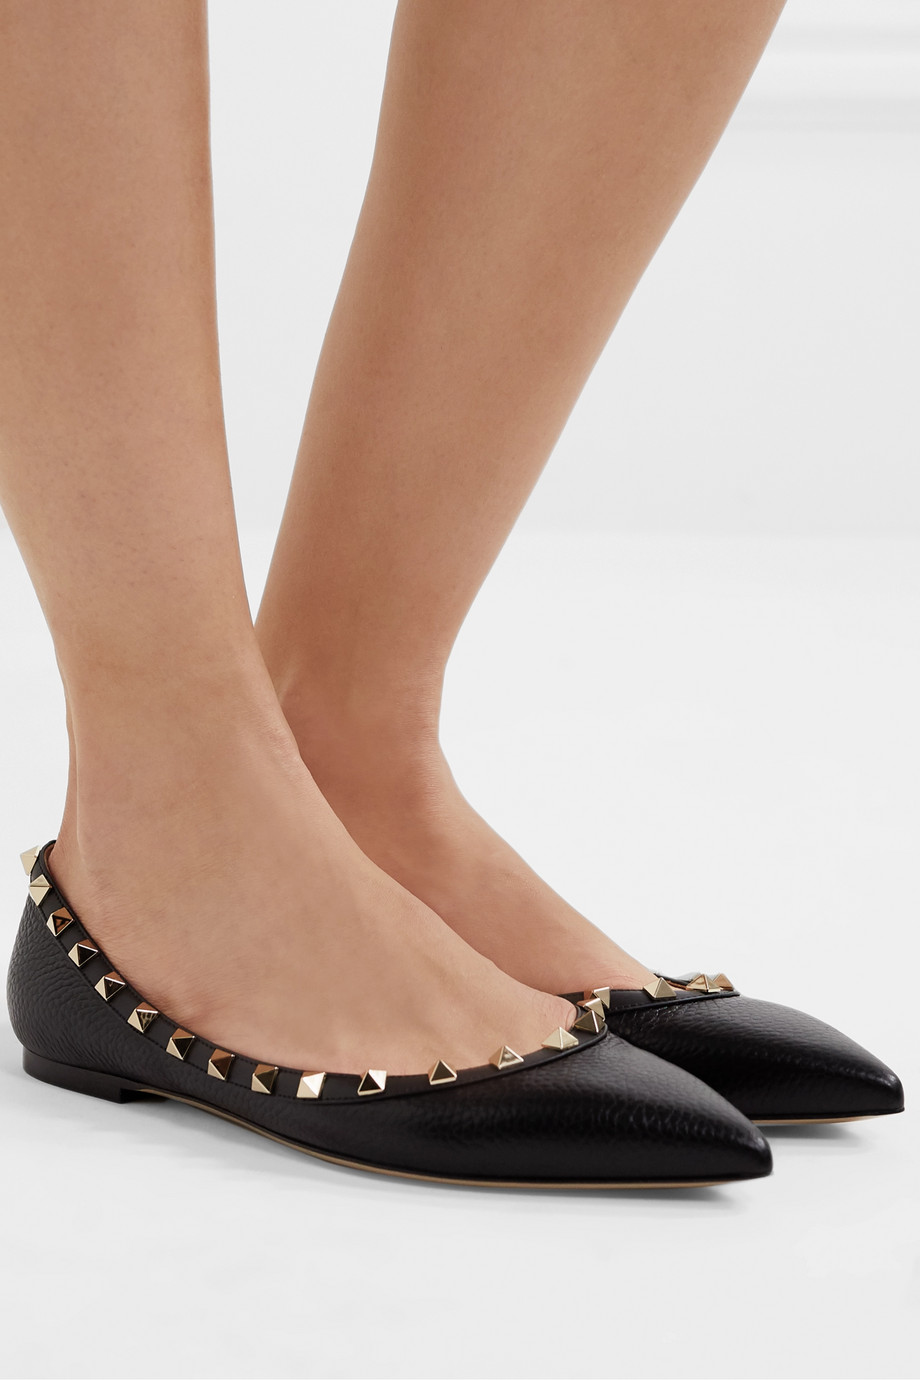 VALENTINO Valentino Garavani Rockstud textured-leather point-toe flats